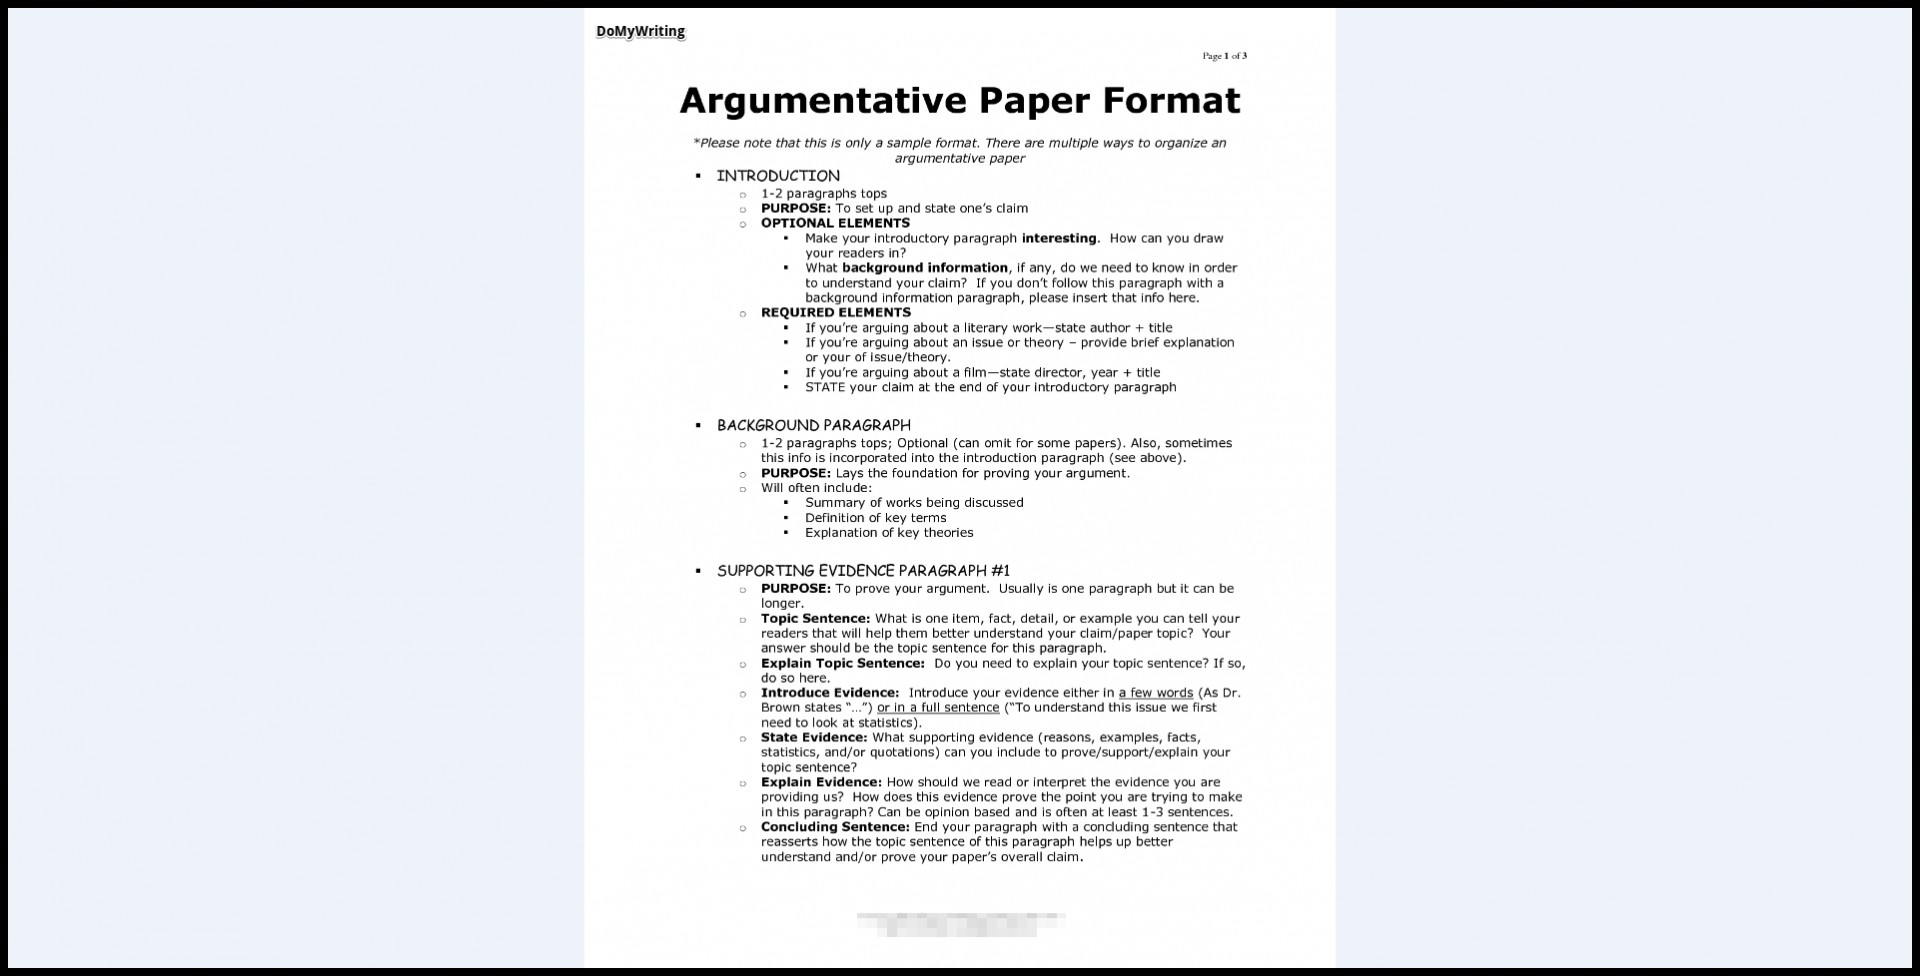 008 Essay Example Argumentative Best Format Template Outline Sample Pdf 1920